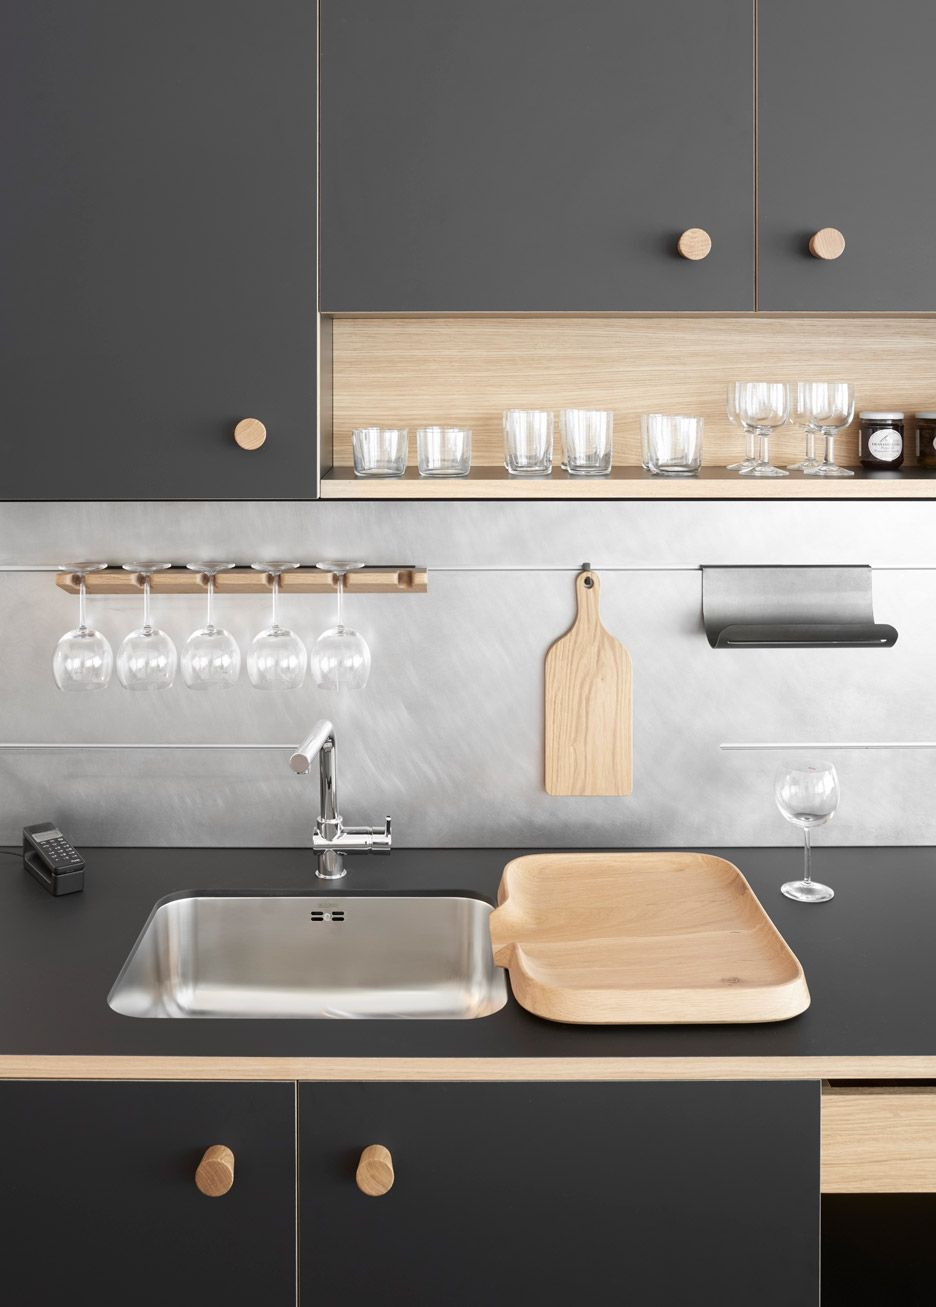 Uses A Nanotechnology In Coating Of Cabinets That Self Heals Minor Scratches Super Normal Style By Jasper Morrison Lepic Kitchen